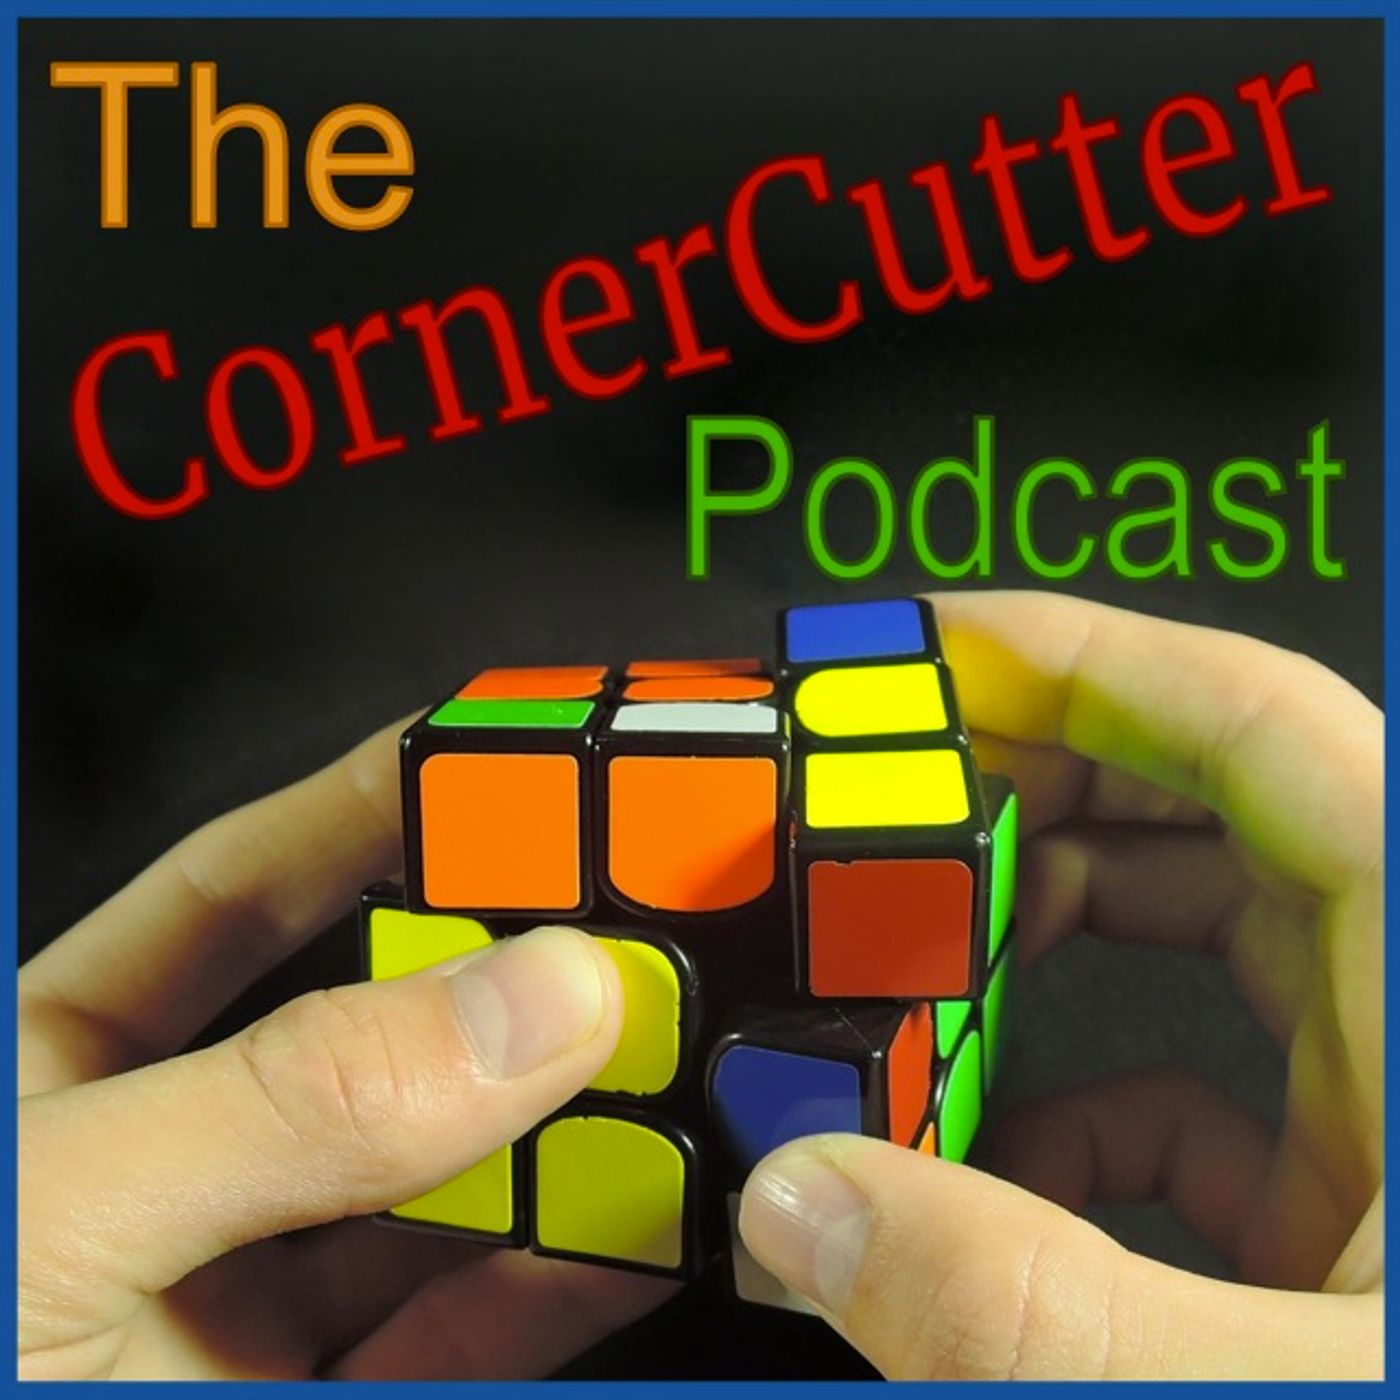 The CornerCutter Podcast - all about cubing and how to improve | Speedcubing | News | Interviews